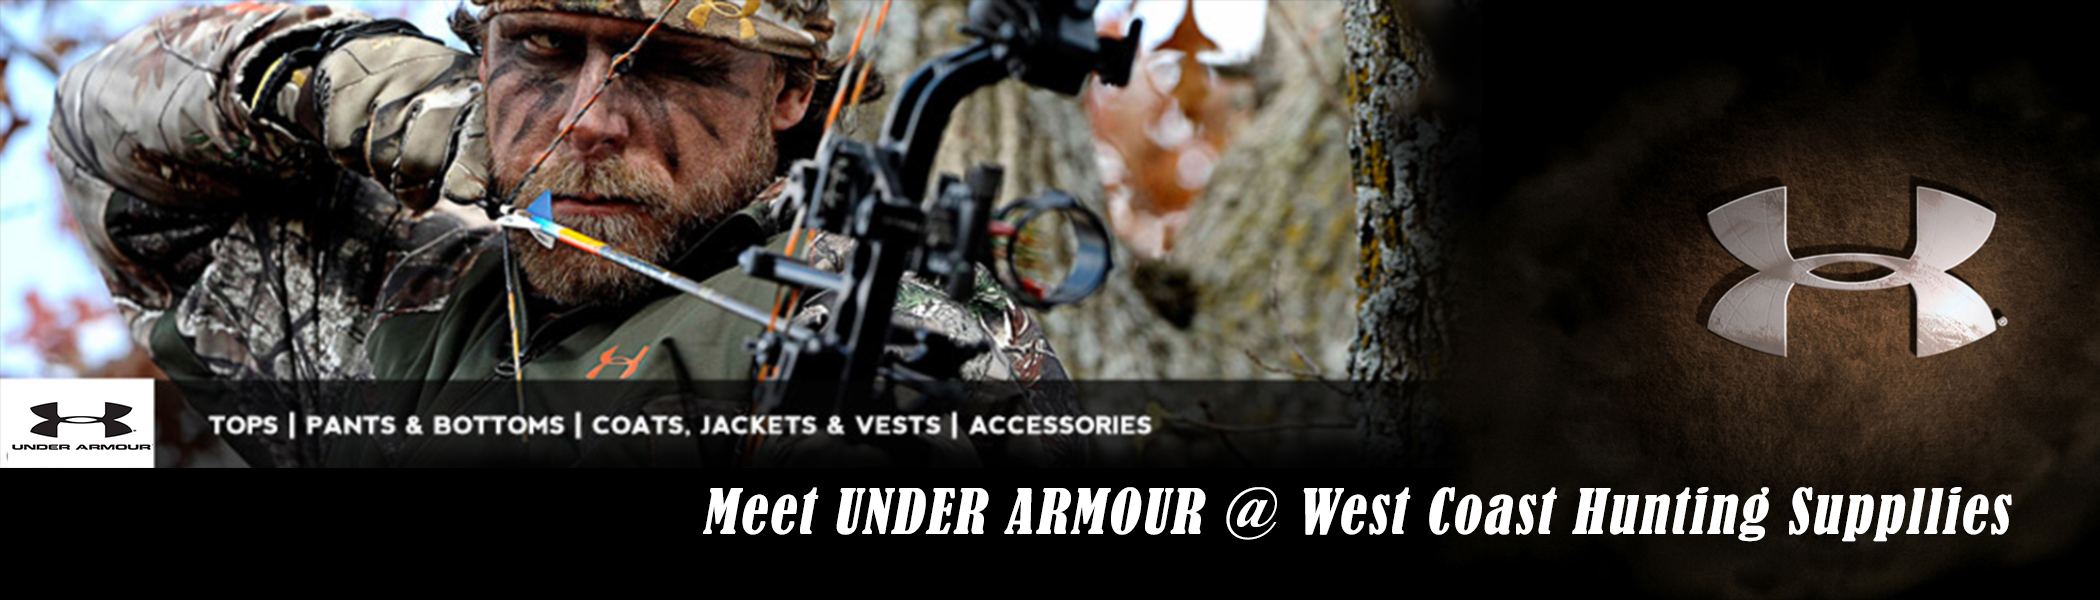 West Coast Hunting, Richmond Gun Shop,under armour